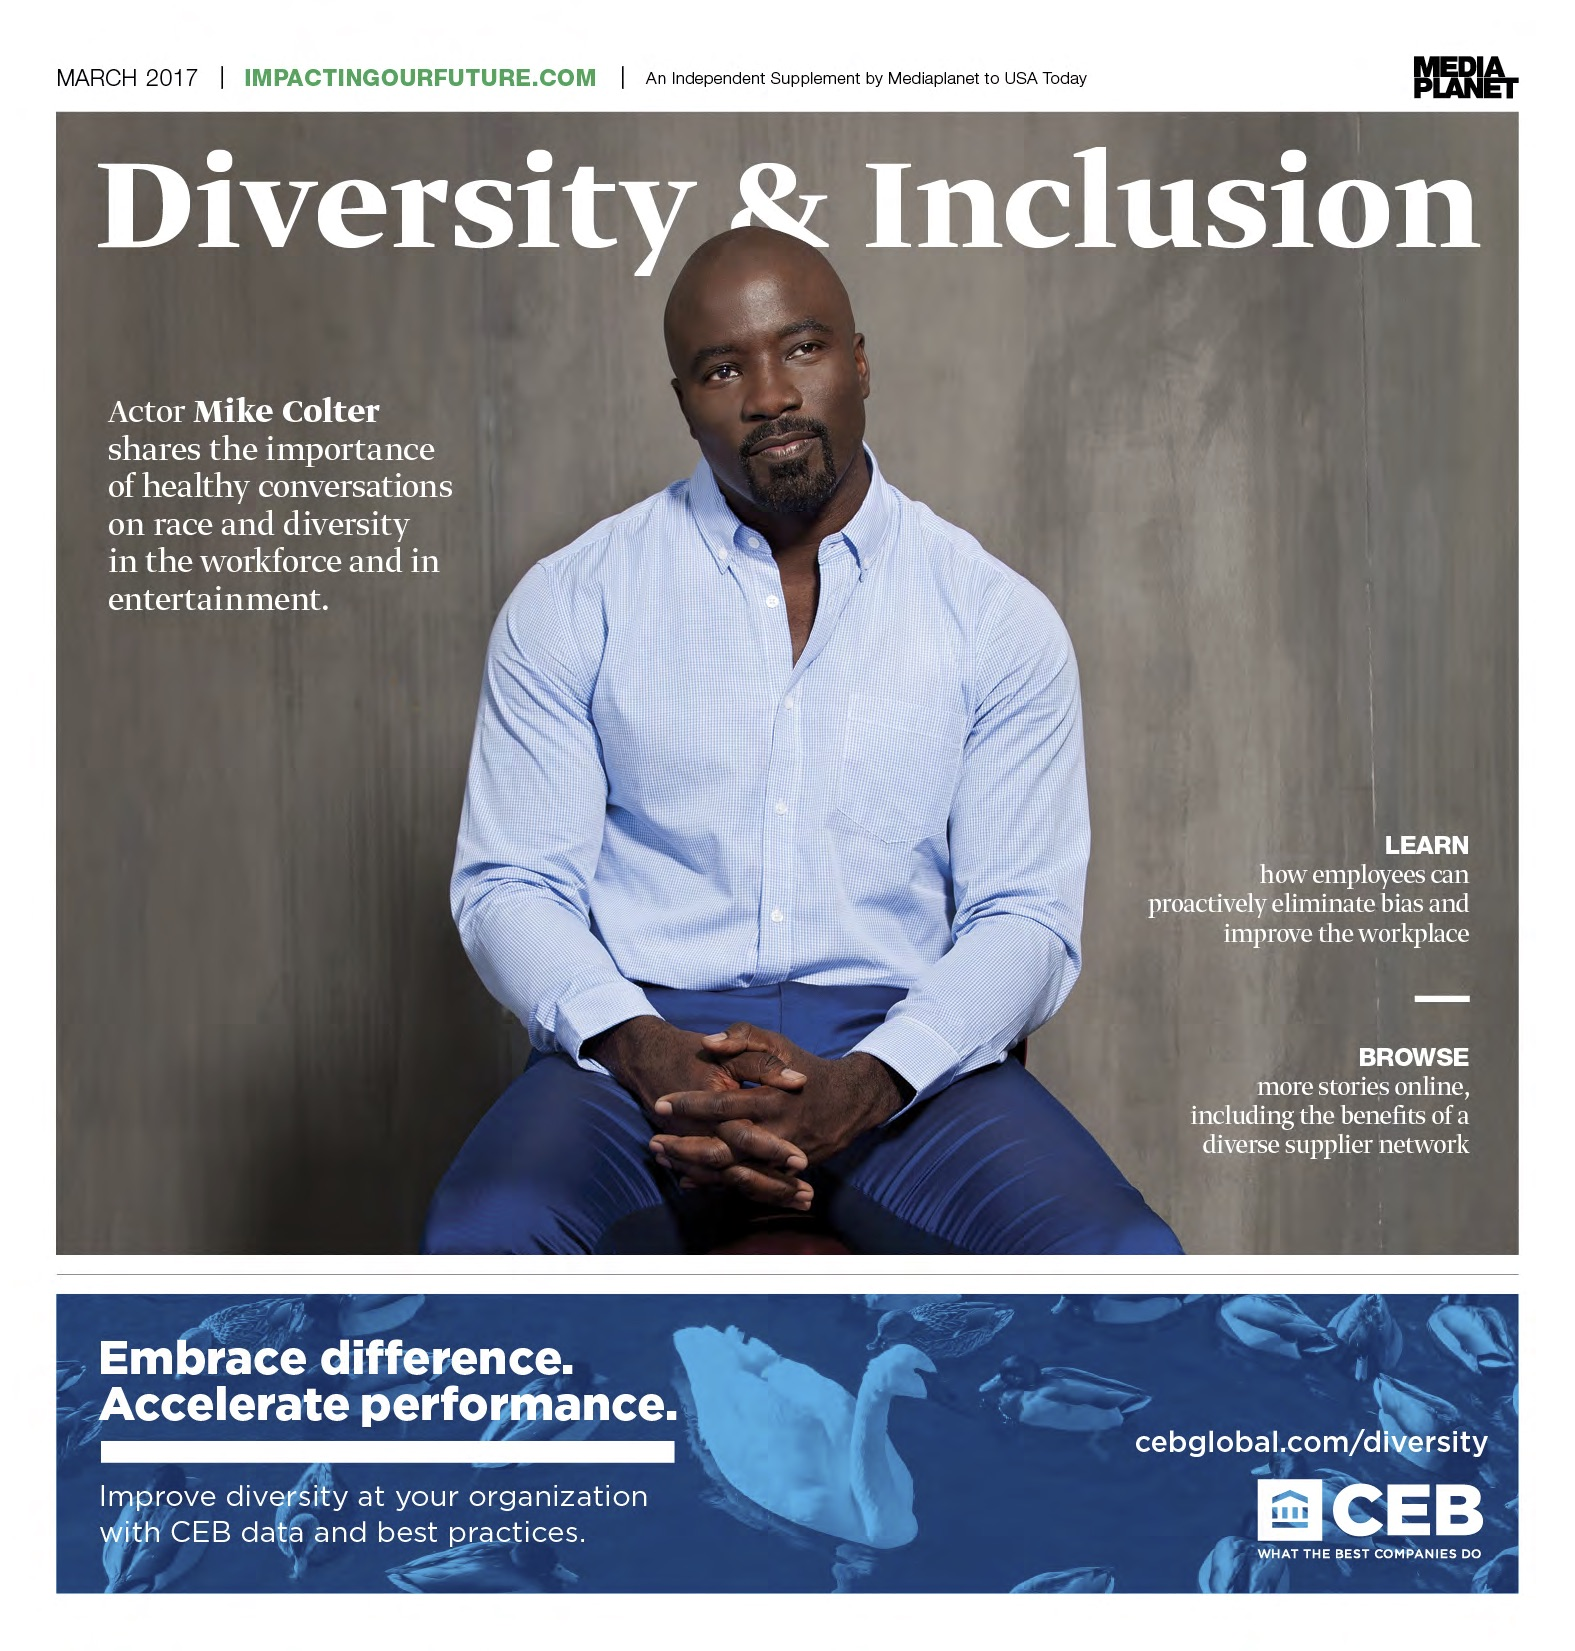 USA Today Diversity Campaign